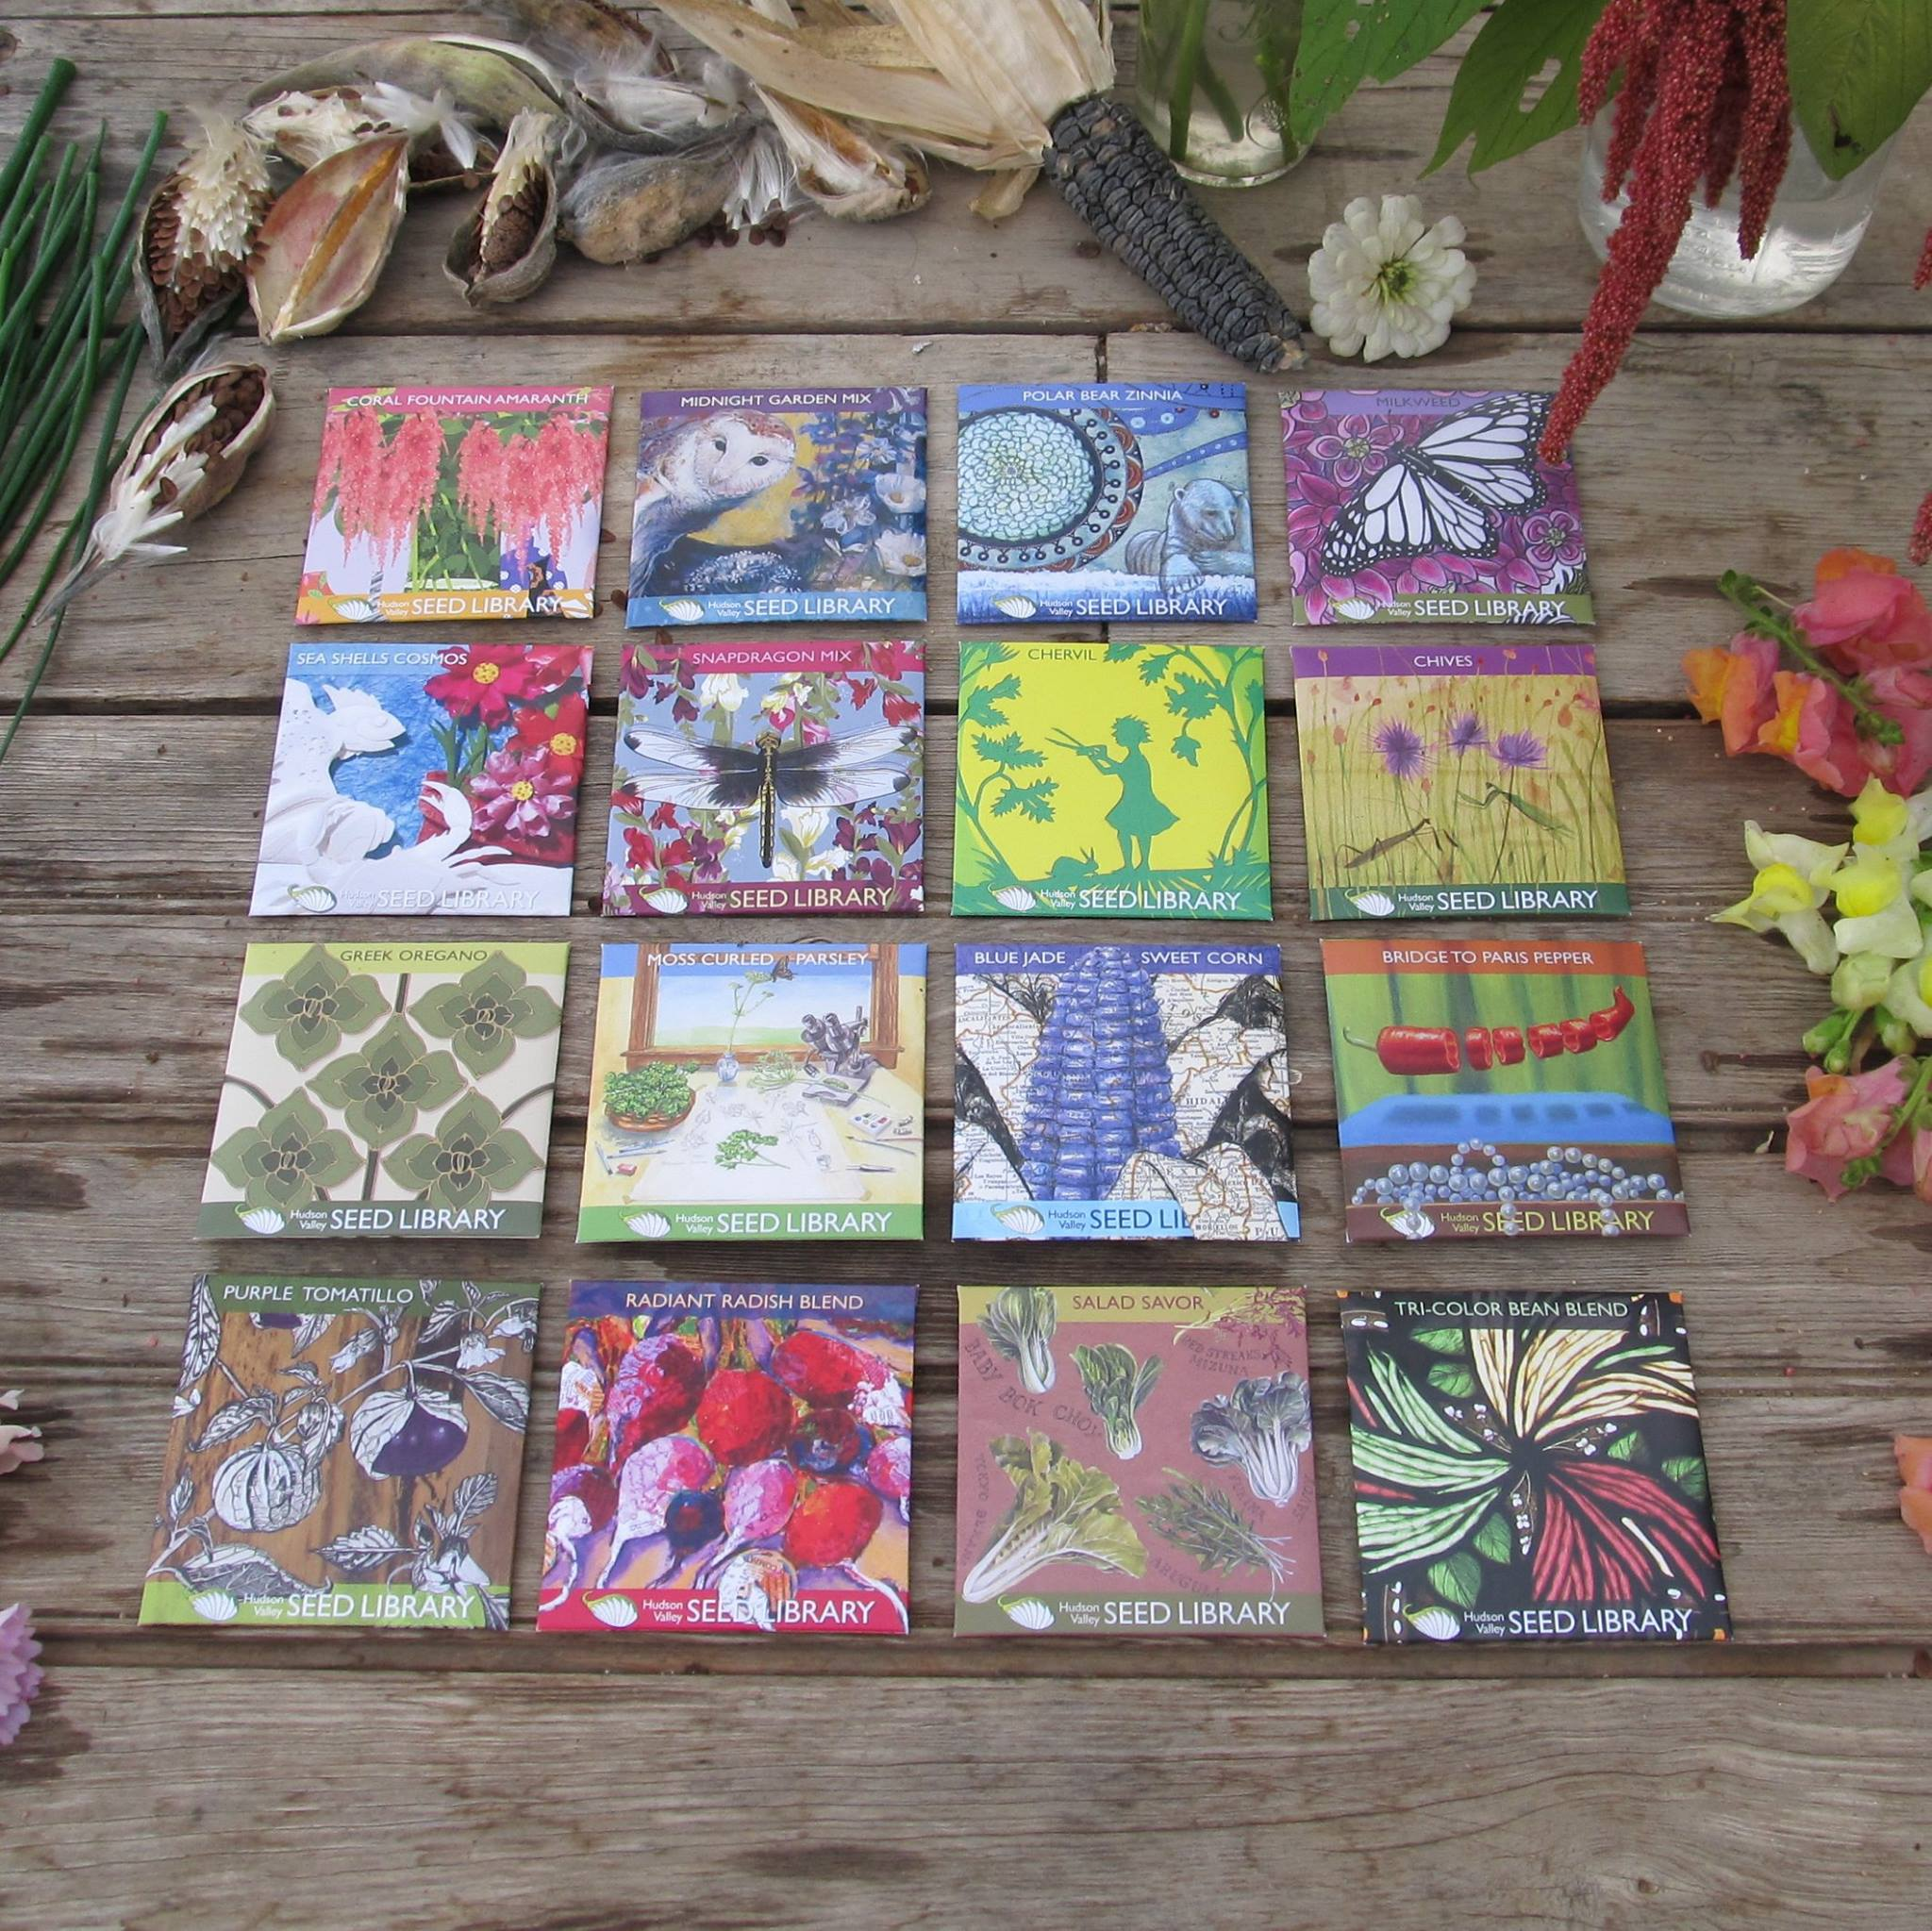 An artfully crafted selection of seeds from the Seed Library